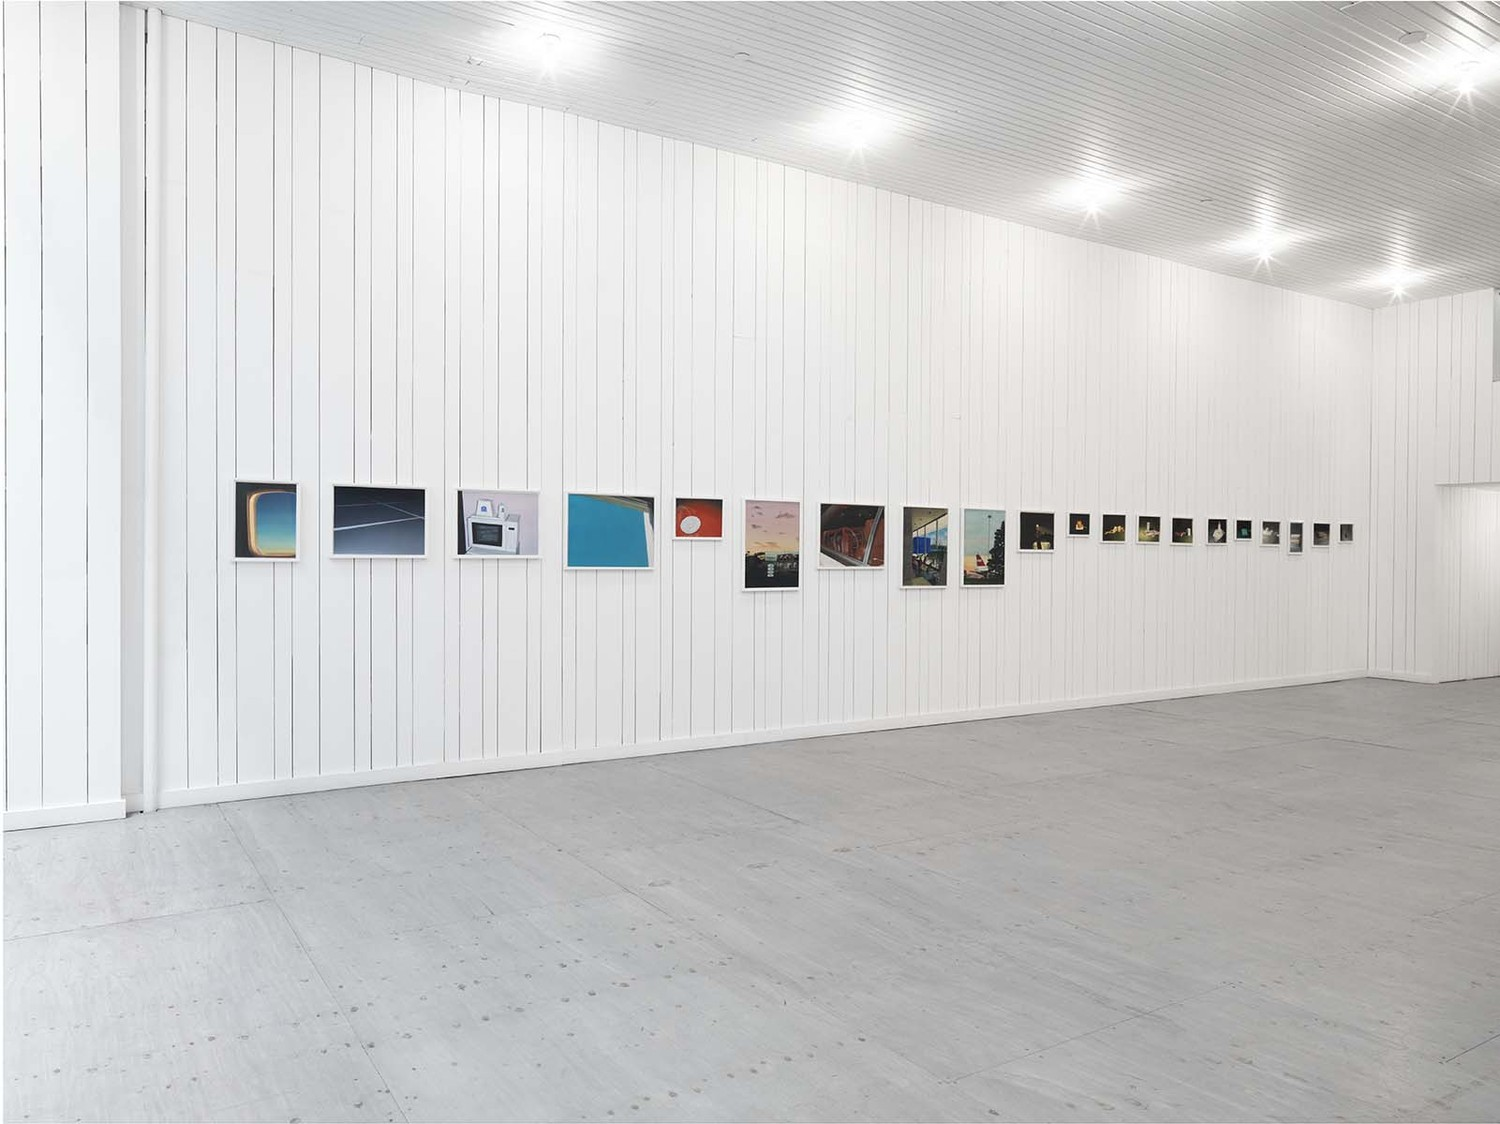 Installation view 'Gouaches 1984 - 2015', Karma, New York, 2015